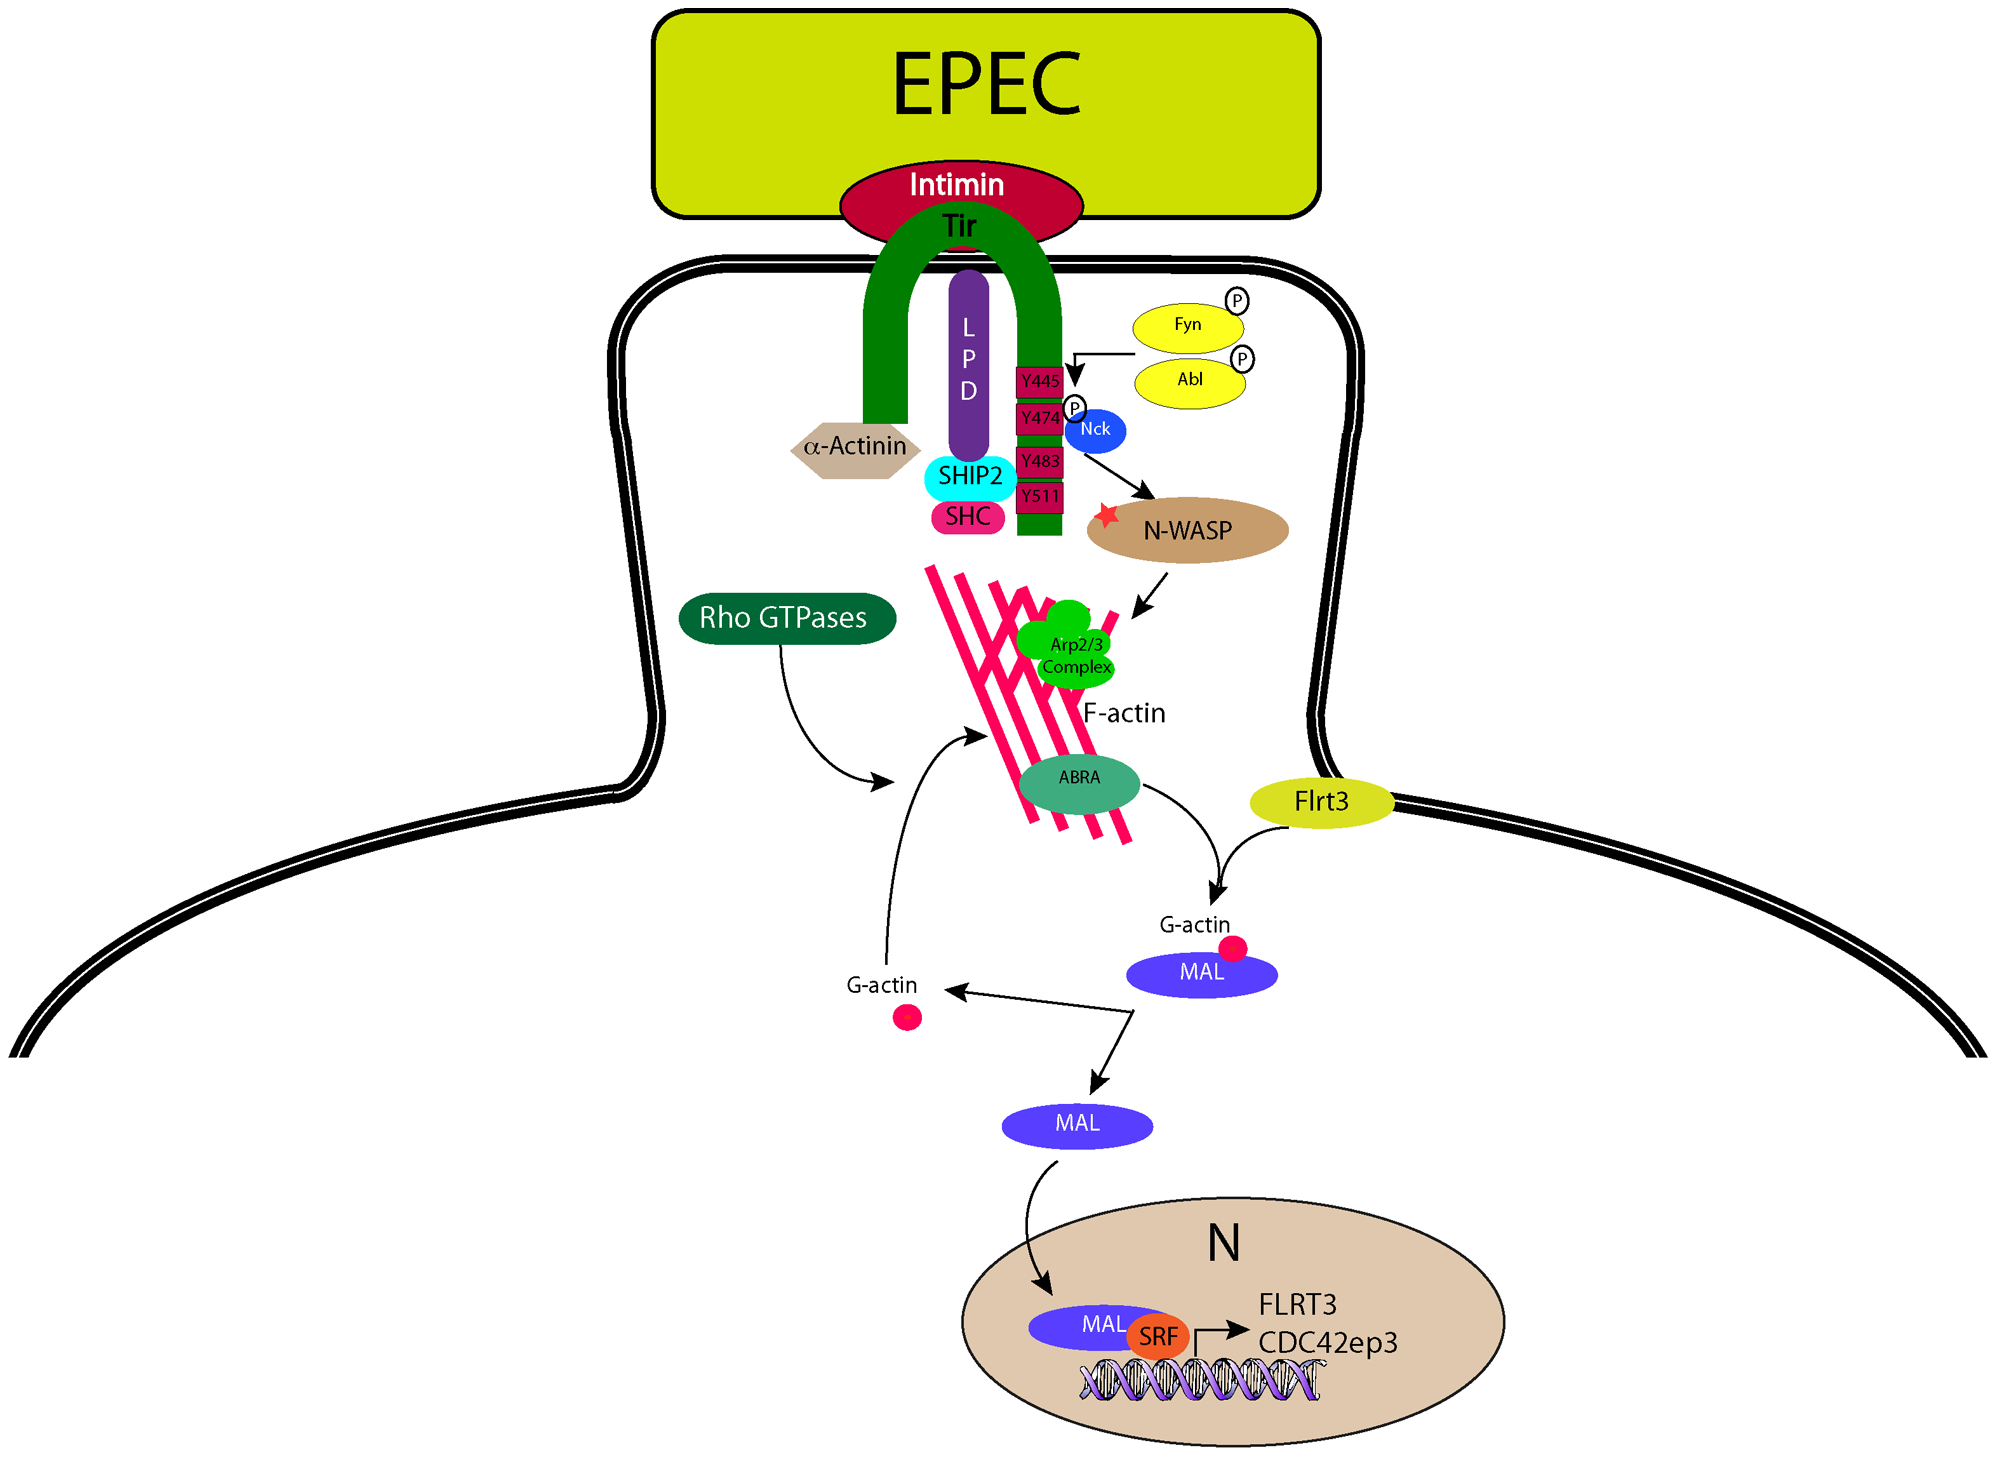 A model for EPEC-induced activation of host-cell transcription factor SRF.